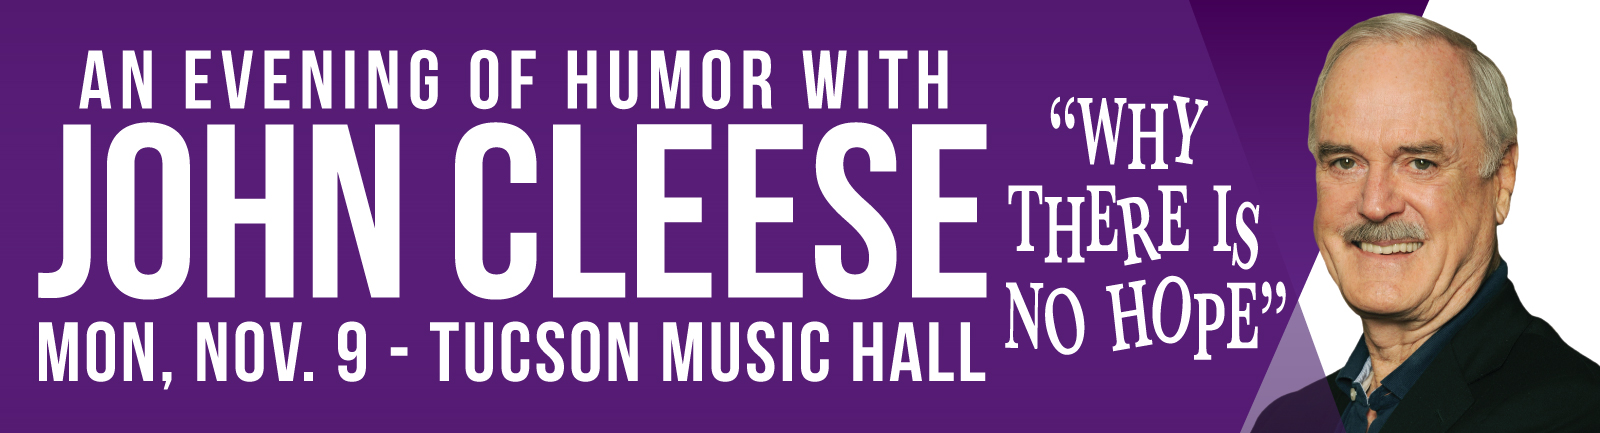 An Evening with John Cleese - Tucson Music Hall